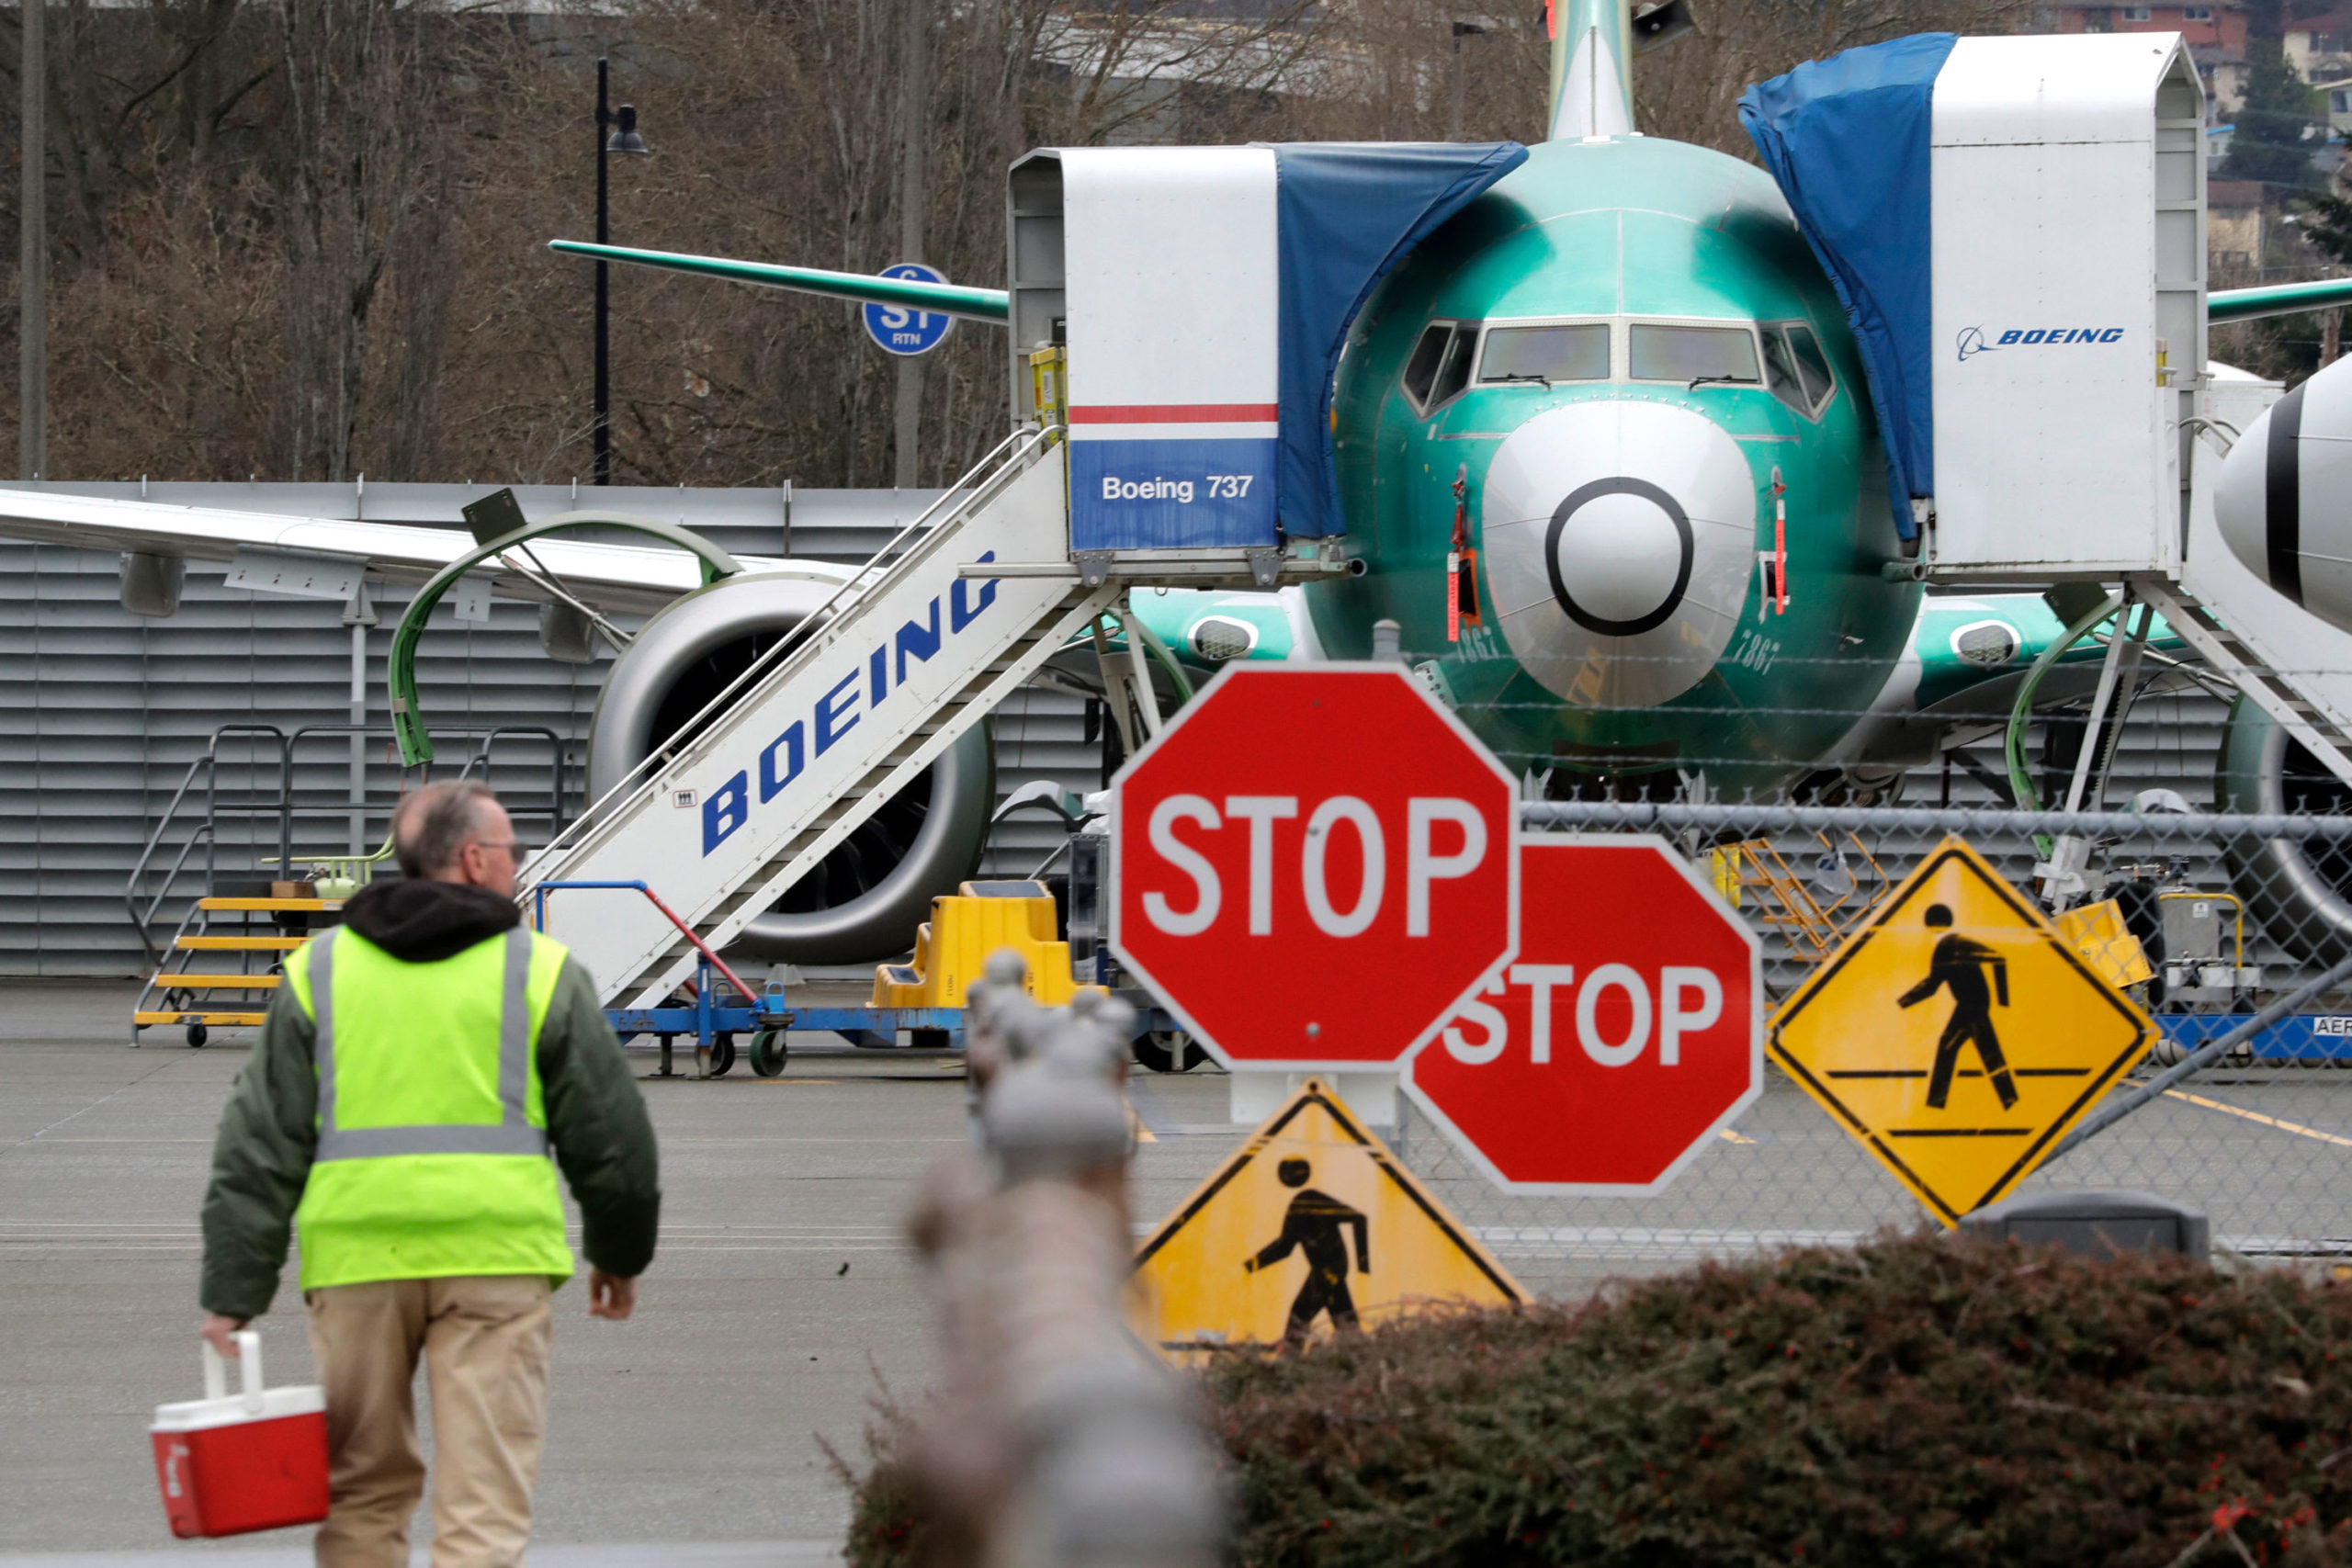 Boeing to develop 737 Max inspections, sources say